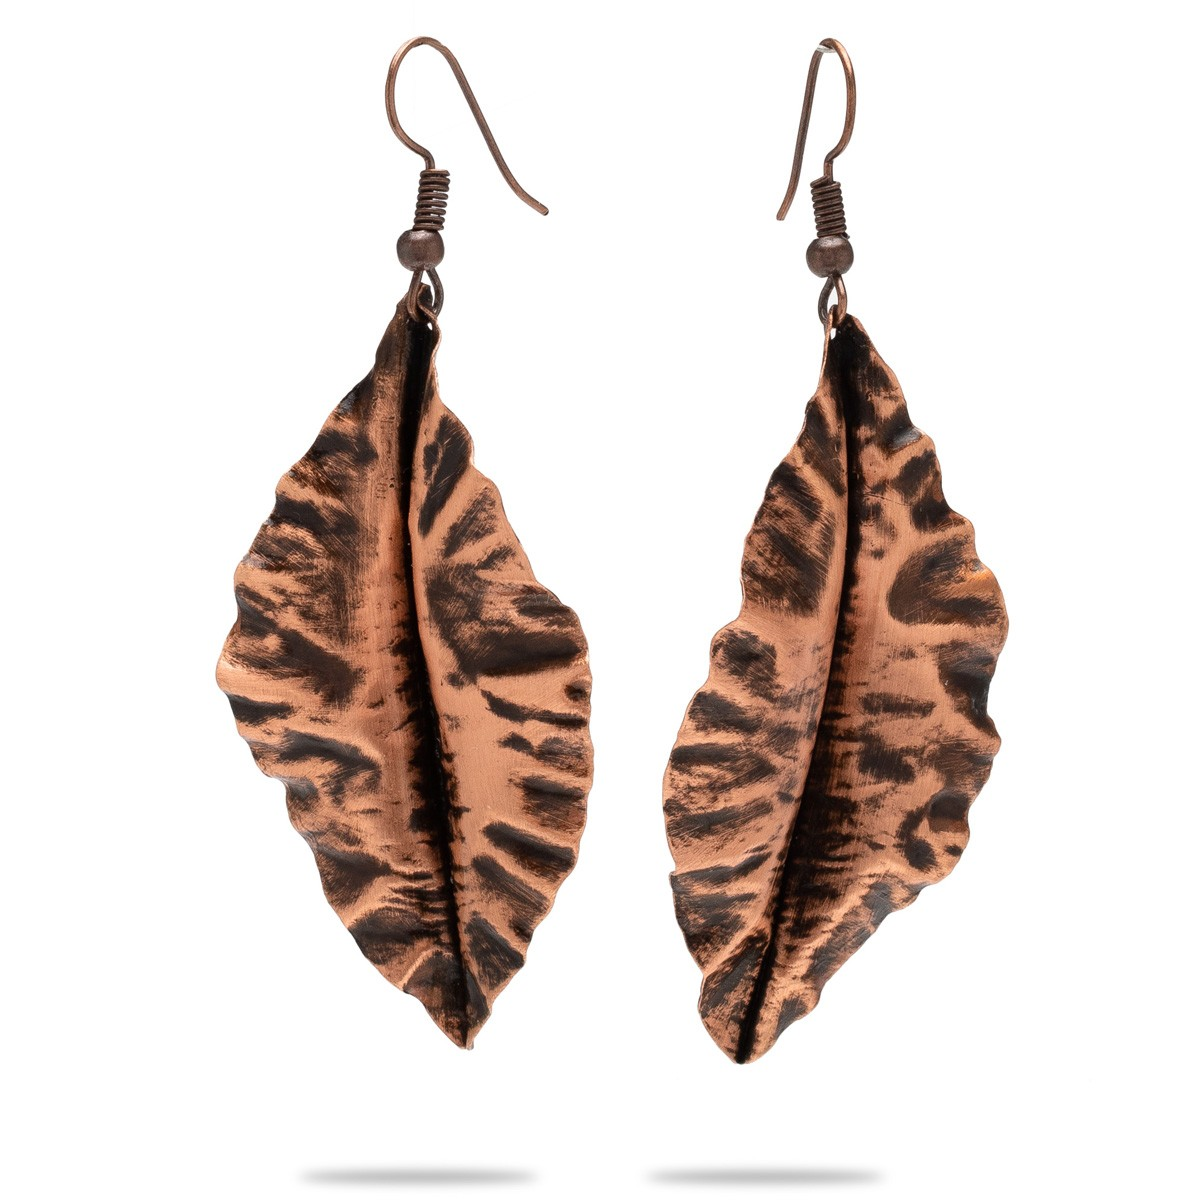 Copper leaf earrings with turquis shape